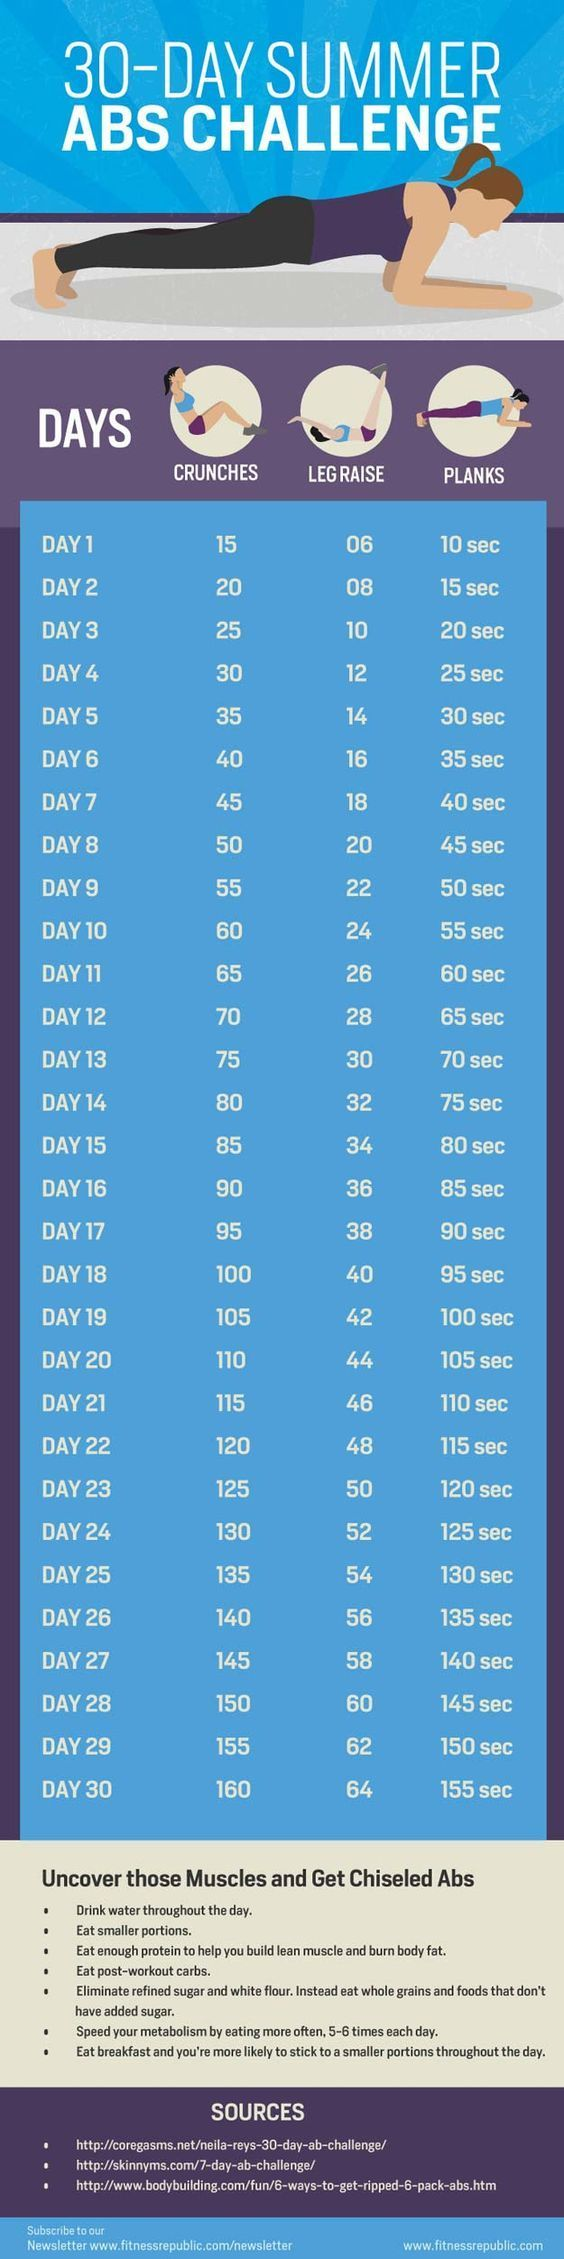 Best Exercises for Abs - 30-Day Summer Abs Challenge - Best Ab Exercises And Ab Workouts For A Flat Stomach, Increased Health Fitness, And Weightless. Ab Exercises For Women, For Men, And For Kids. Great With A Diet To Help With Losing Weight From The Low (Burn Belly Fat Fast Workout)